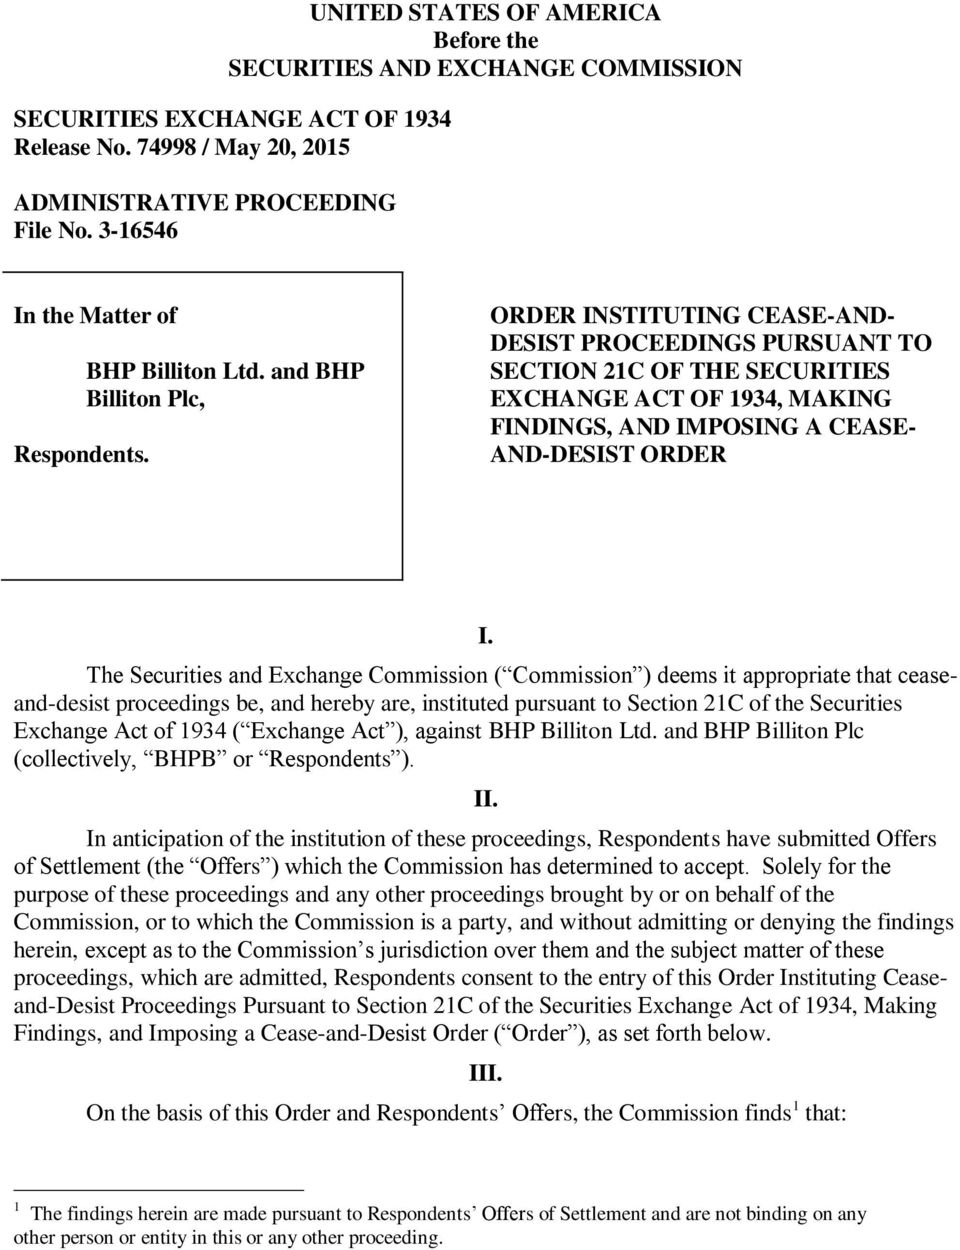 and BHP Billiton Plc, ORDER INSTITUTING CEASE-AND- DESIST PROCEEDINGS PURSUANT TO SECTION 21C OF THE SECURITIES EXCHANGE ACT OF 1934, MAKING FINDINGS, AND IMPOSING A CEASE- AND-DESIST ORDER I.